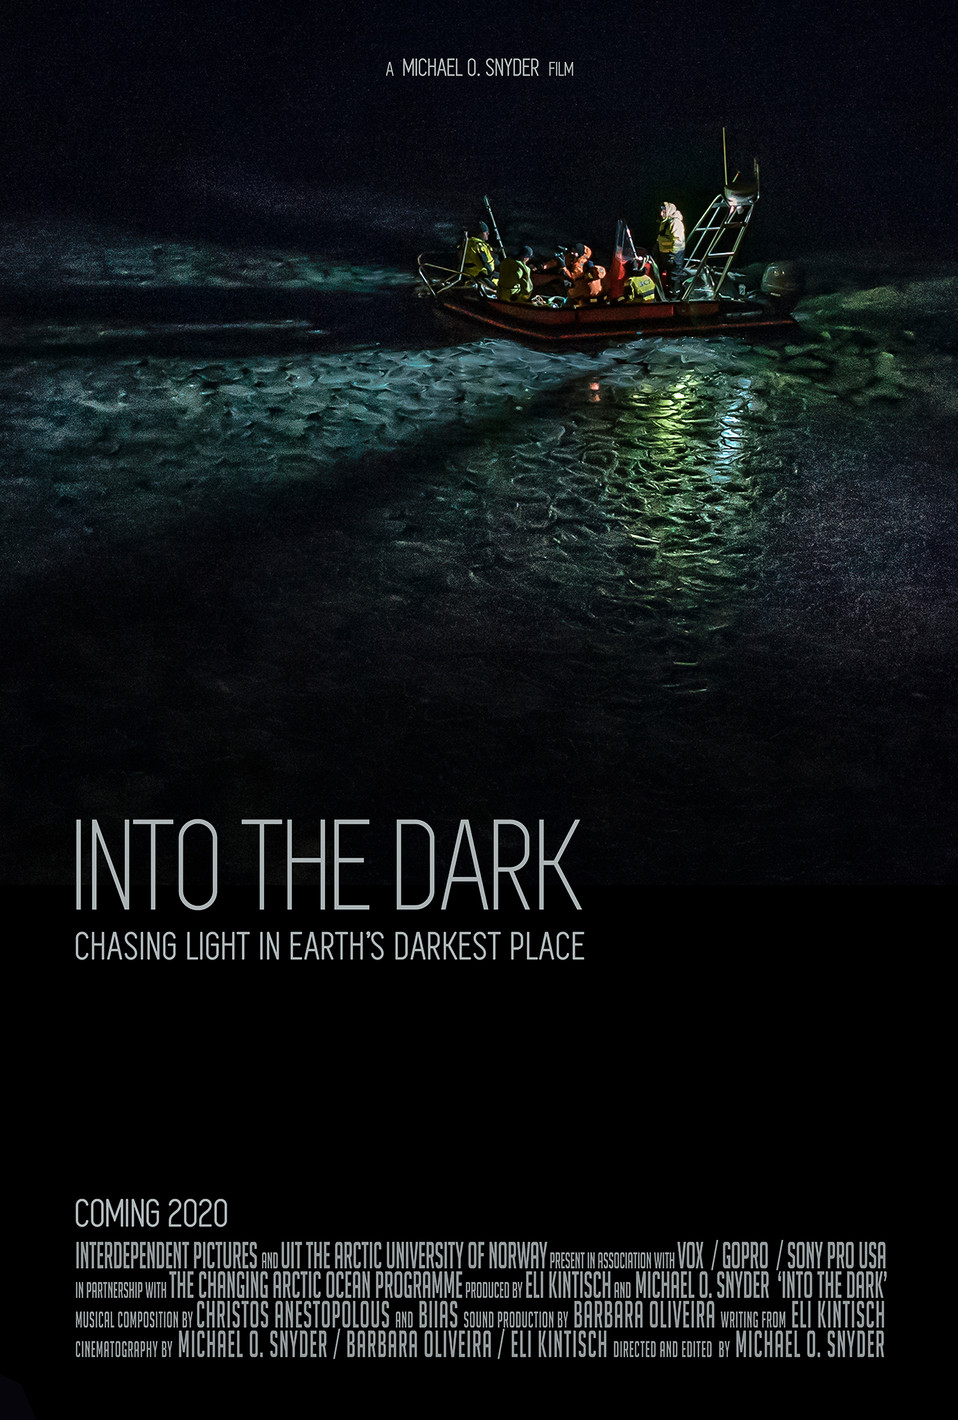 Into the Dark Poster (40x27)_UPLOAD.jpg